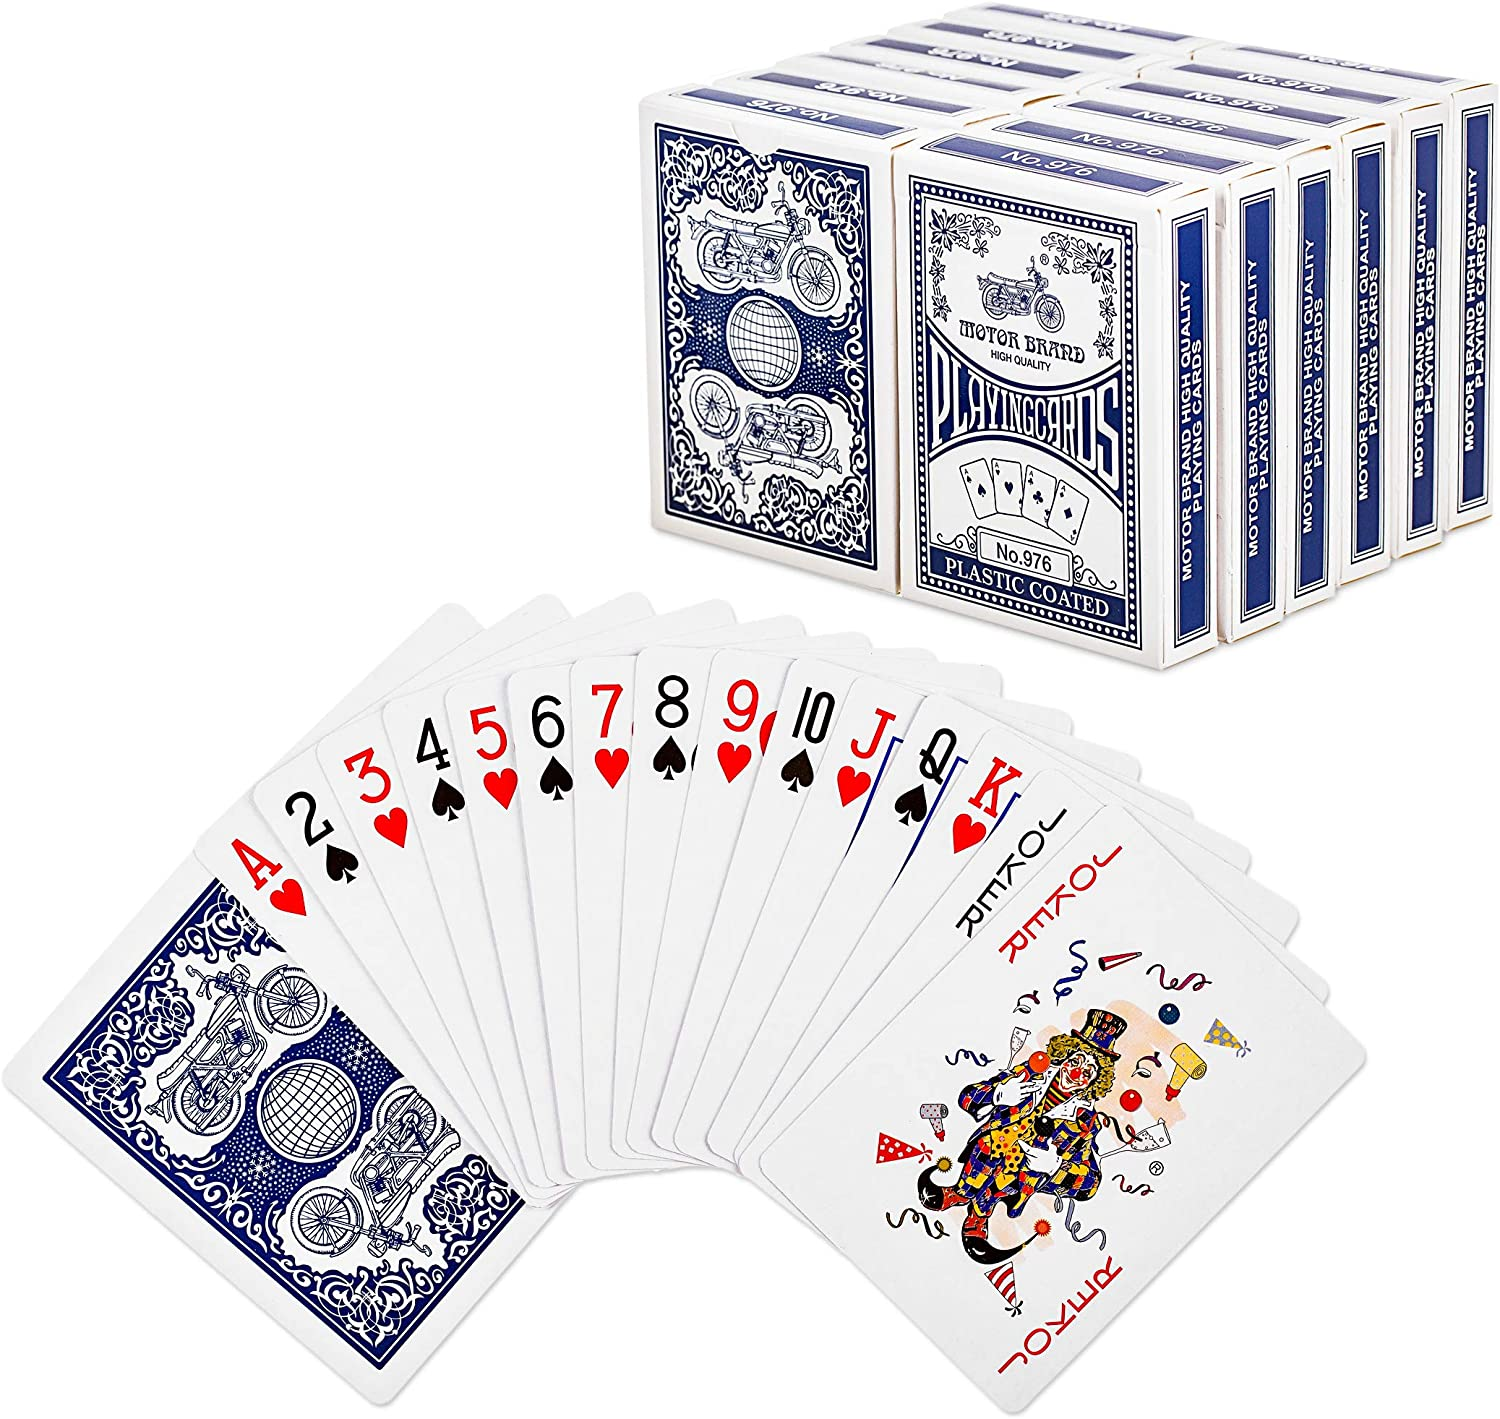 Amazon Com Otron Playing Cards Poker Size Standard Index 12 Decks Of Cards Blue Or Red For Blackjack Euchre Canasta Pinochle Card Game Poker Cards Casino Grade Toys Games